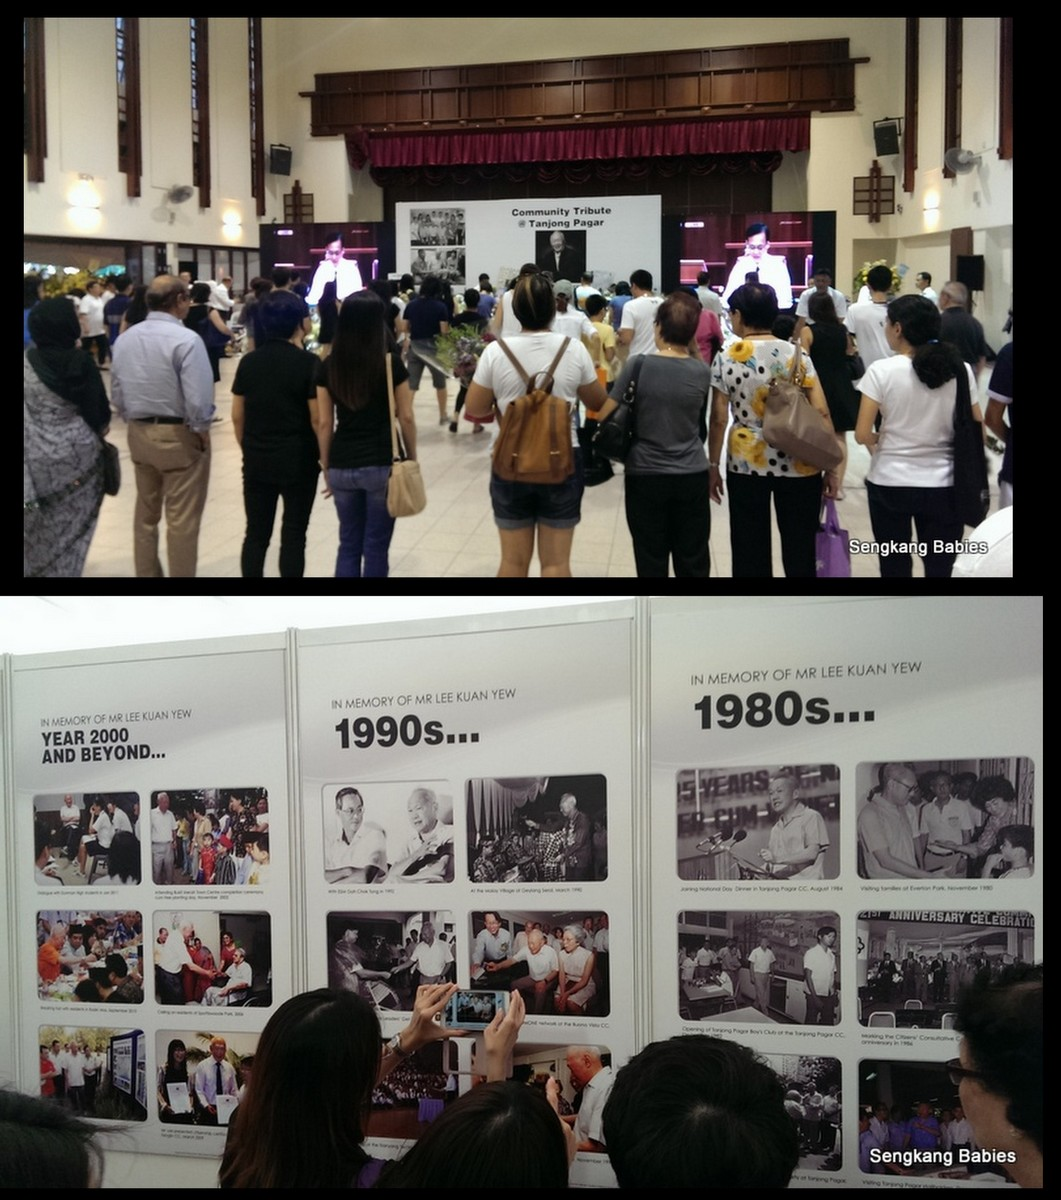 Lee Kuan Yew Tanjong Pagar Tribute